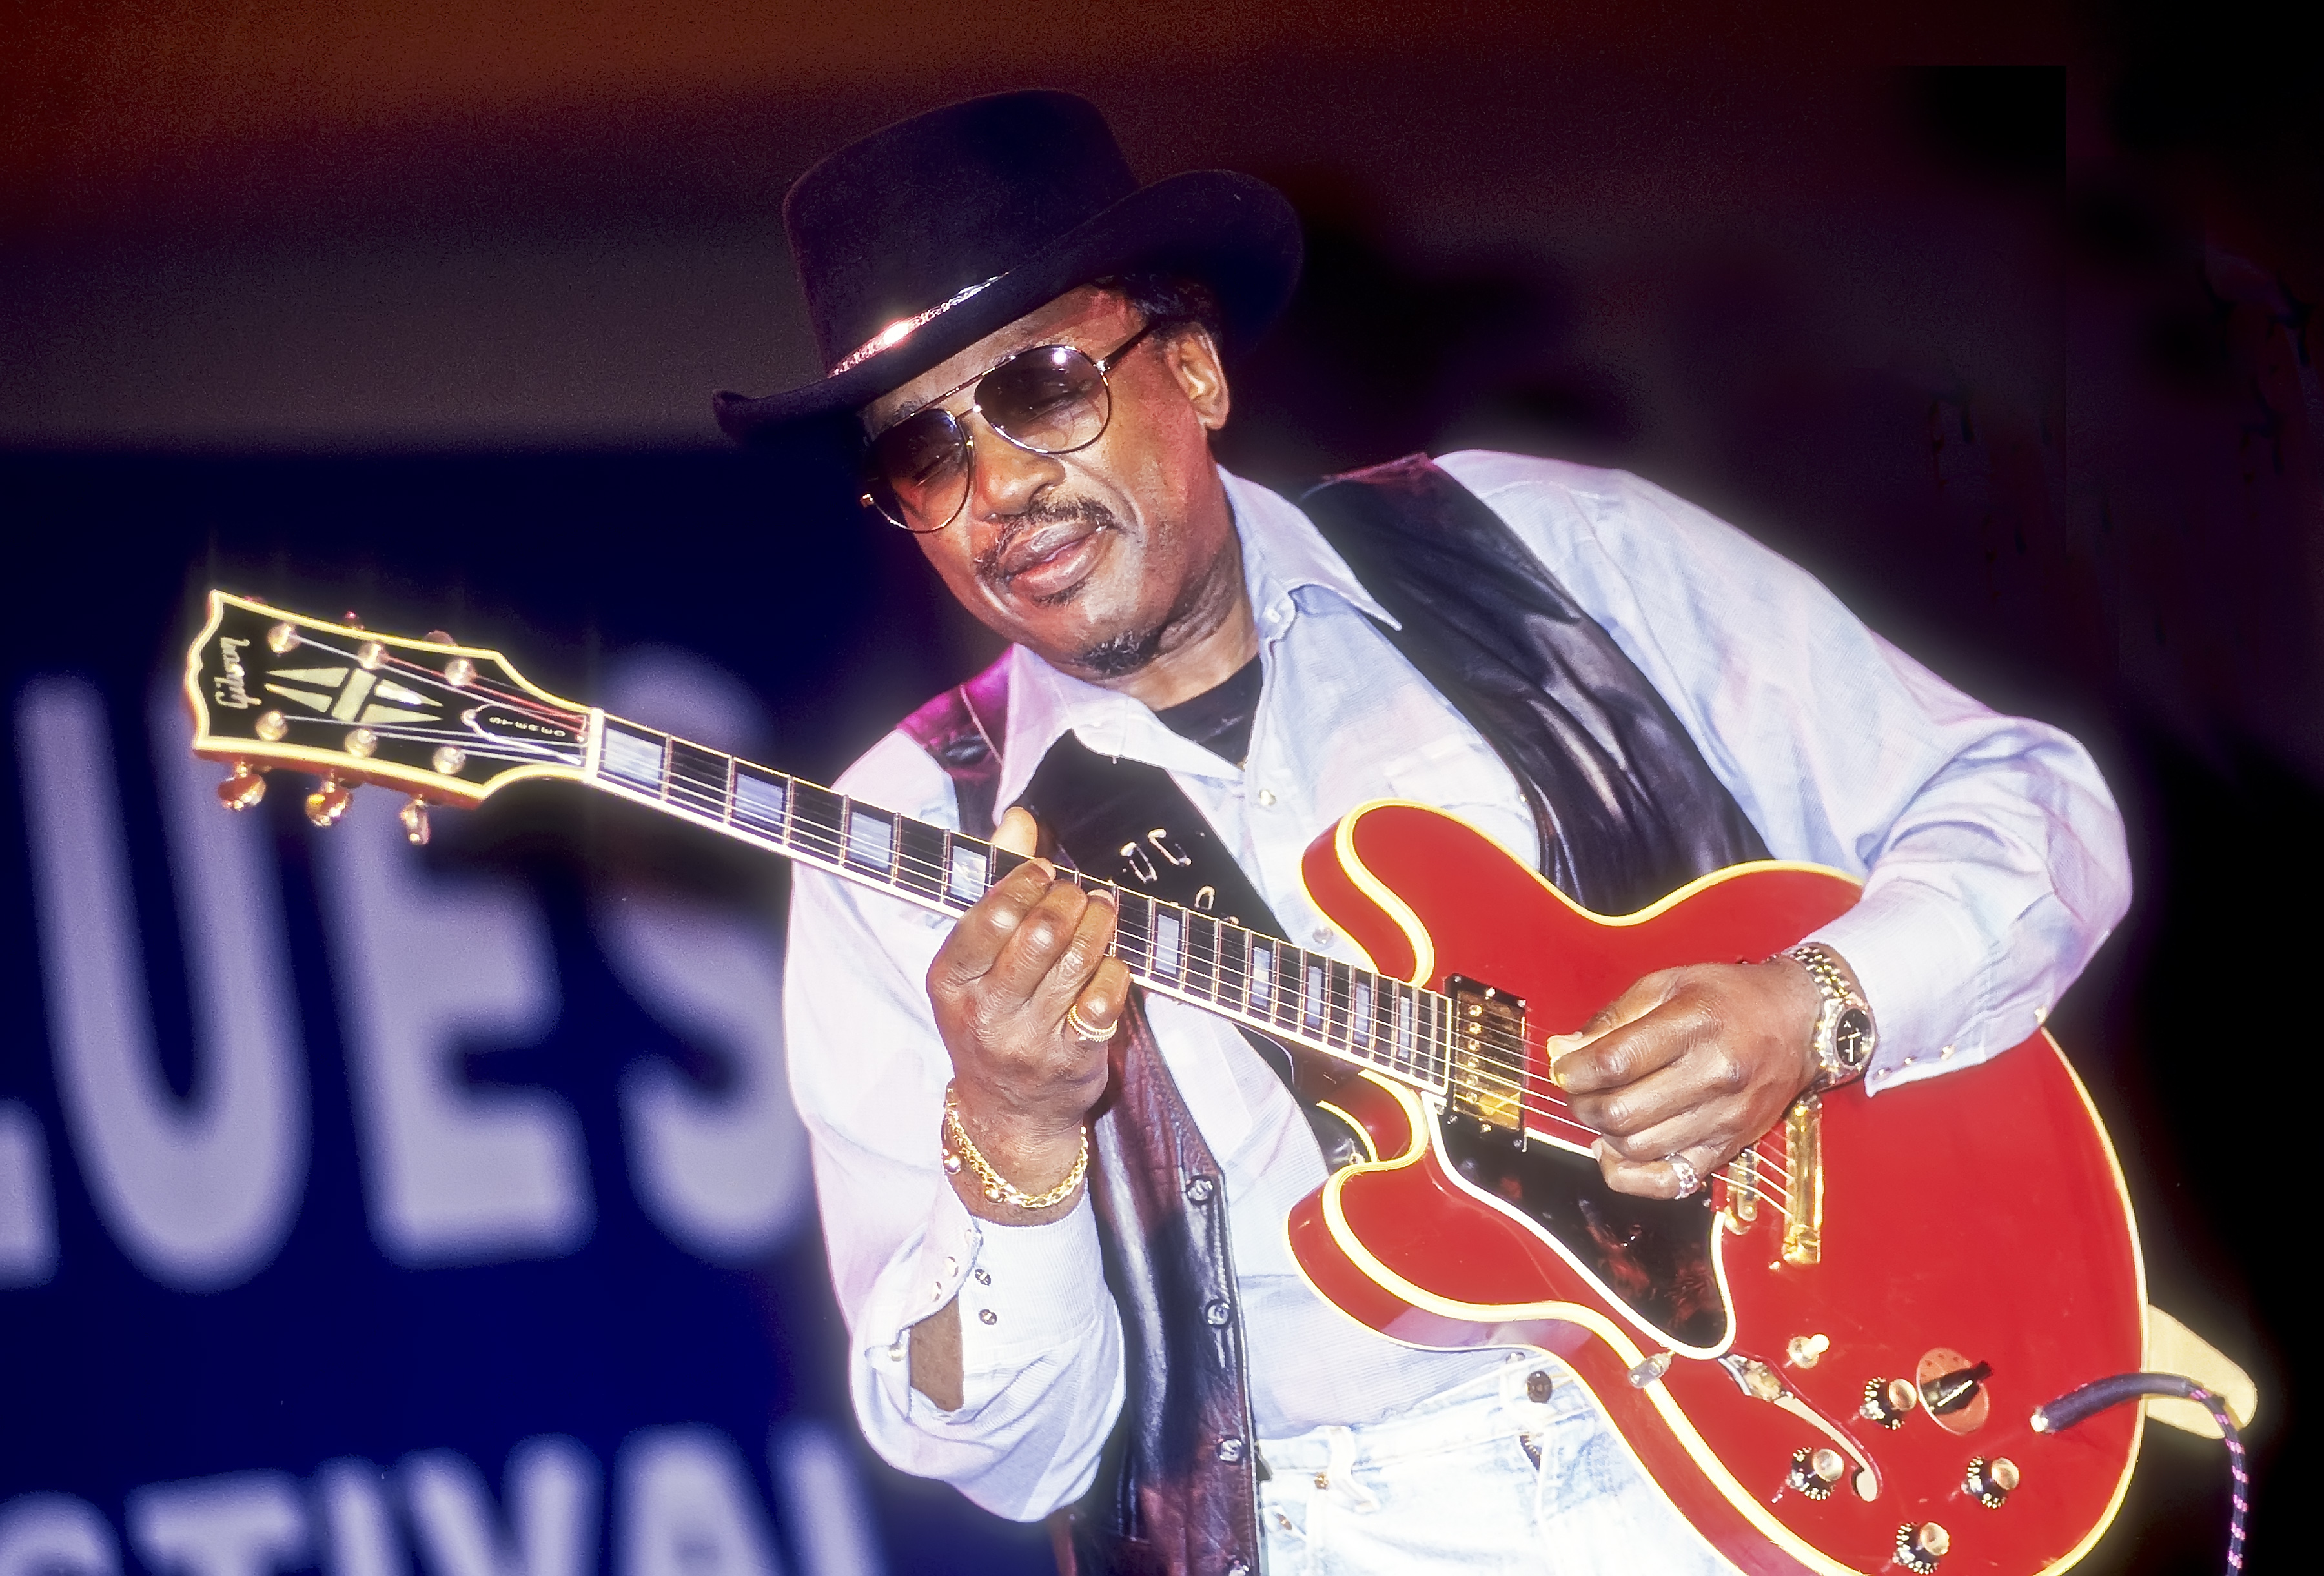 American blues musician Otis Rush plays guitar during a performance at the 12th Annual Chicago Blues Festival on Grant Park's Petrillo Music Shell stage, Chicago, Illinois, June 3, 1995. (Photo by Jack Vartoogian/Getty Images)